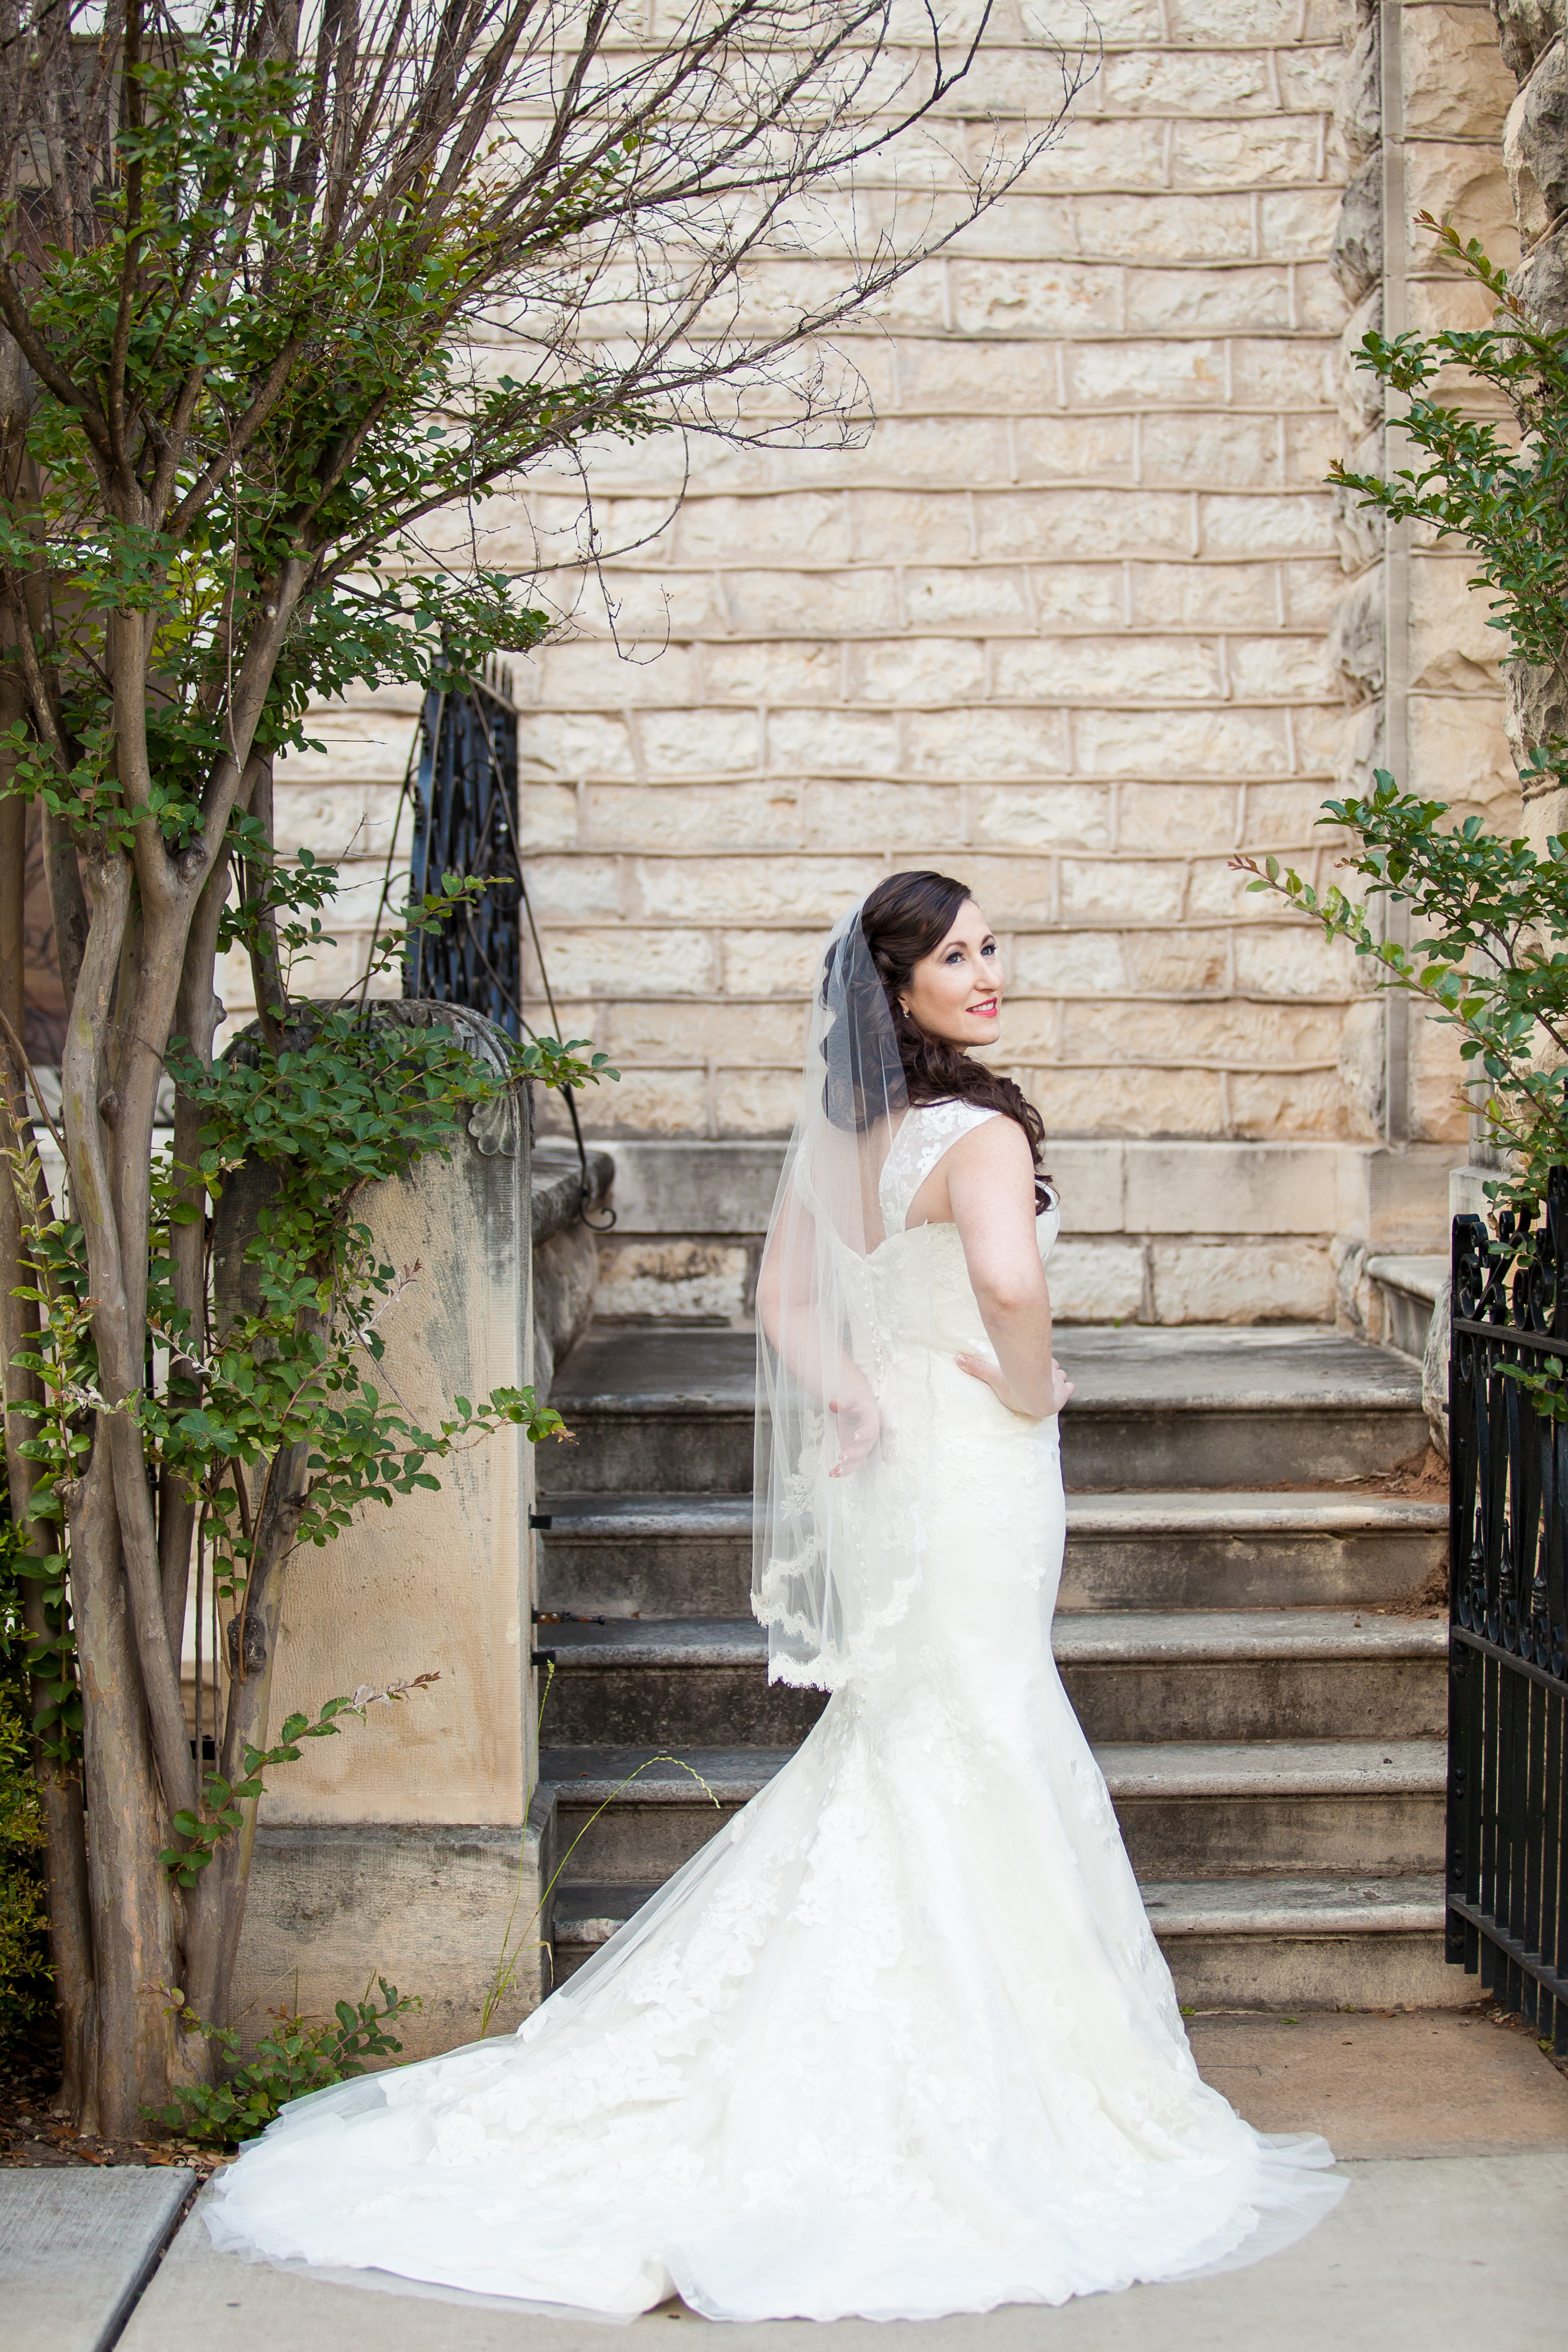 Wedding Dress Photo Bella Mera Bridal Customer